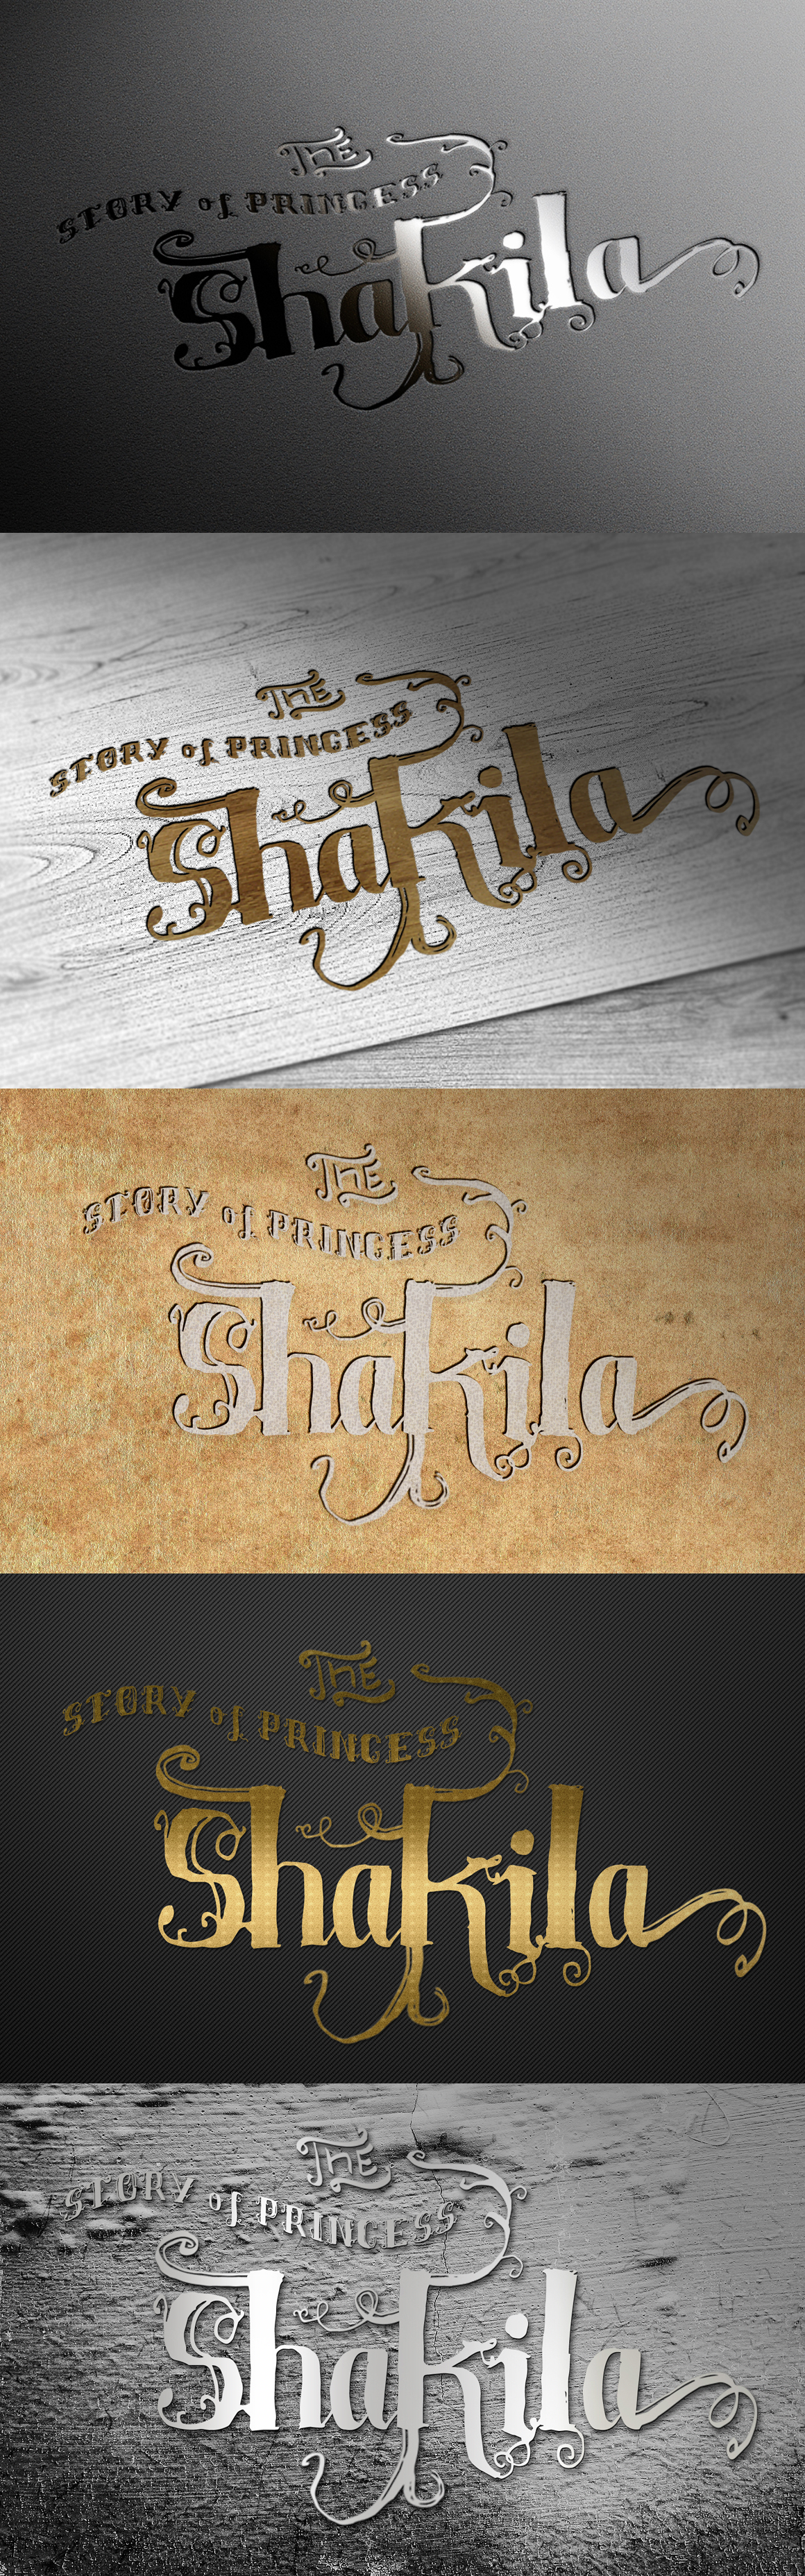 Shakila Typeface Hand Drawn Ornament example image 3